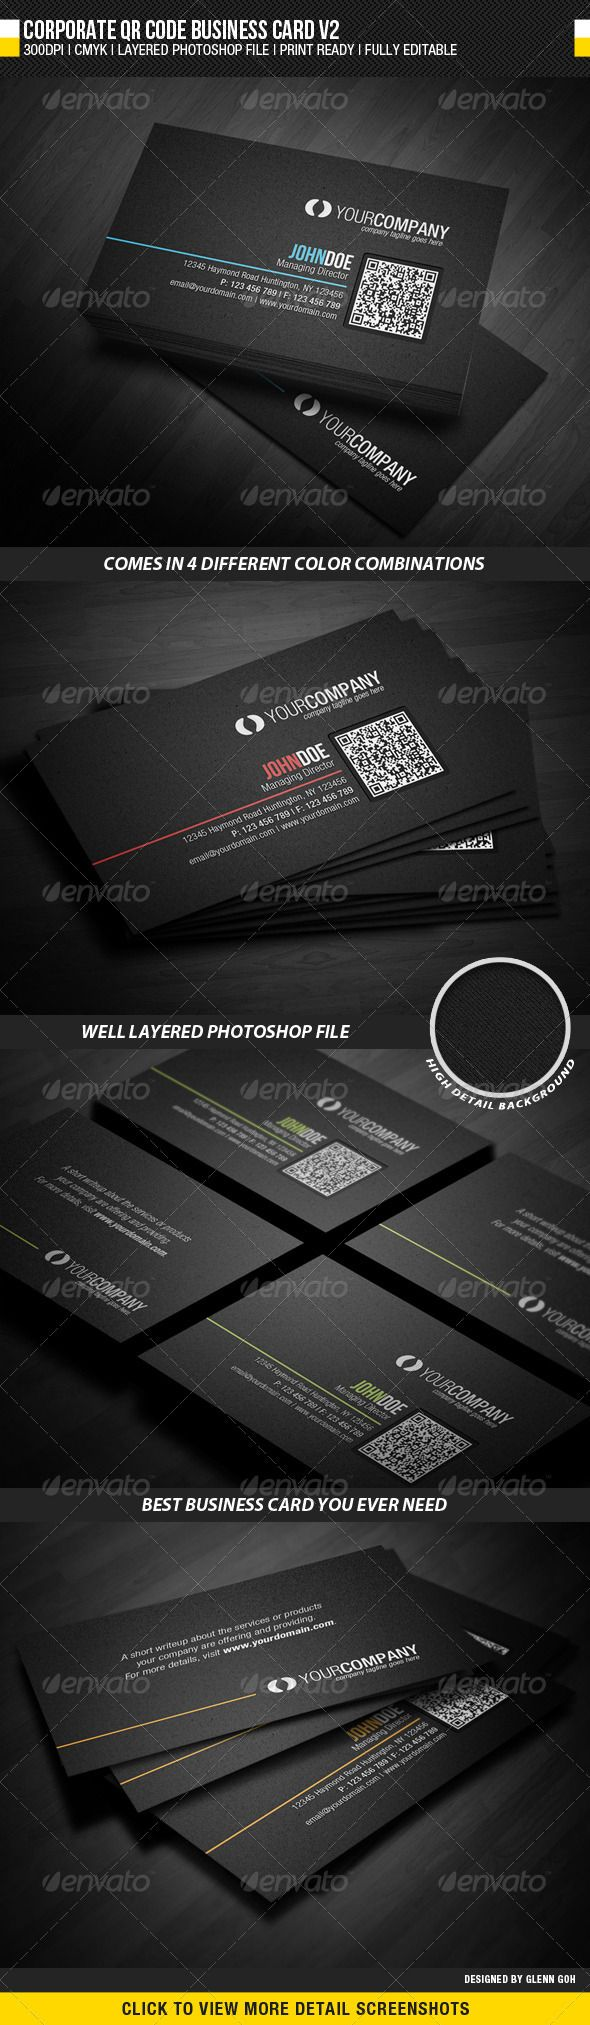 117 best business cards psd with qr code images on pinterest corporate qr code business card v2 reheart Images